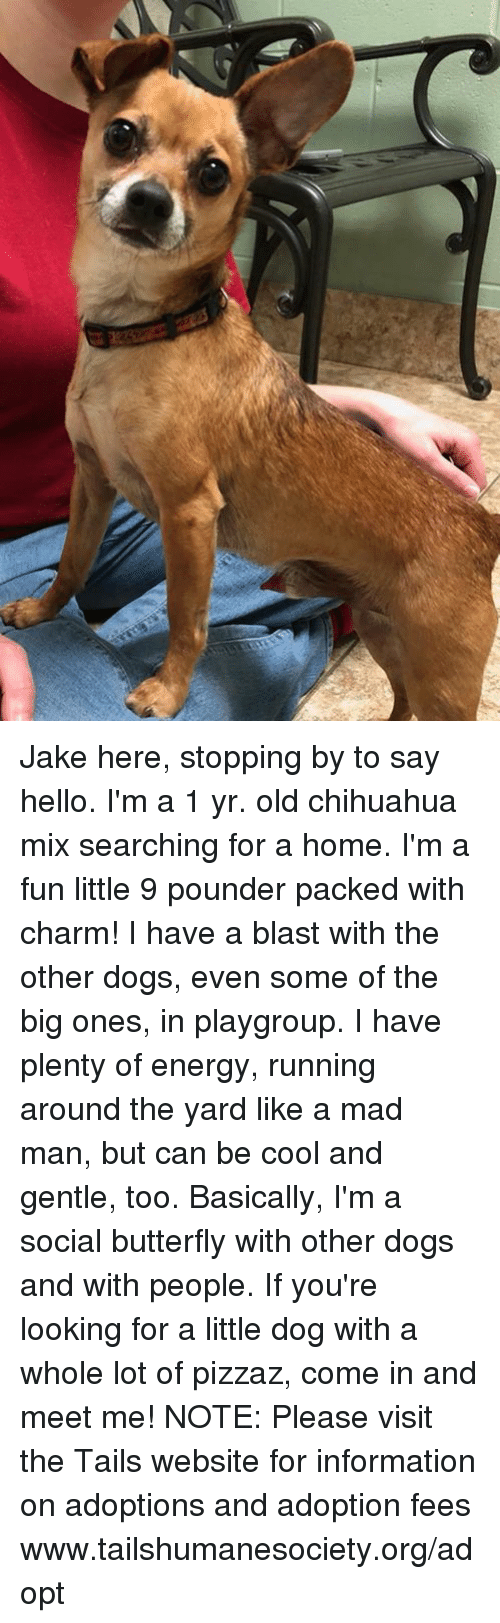 Chihuahua, Dogs, and Energy: Jake here, stopping by to say hello. I'm a 1 yr. old chihuahua mix searching for a home. I'm a fun little 9 pounder packed with charm! I have a blast with the other dogs, even some of the big ones, in playgroup. I have plenty of energy, running around the yard like a mad man, but can be cool and gentle, too. Basically, I'm a social butterfly with other dogs and with people. If you're looking for a little dog with a whole lot of pizzaz, come in and meet me! NOTE: Please visit the Tails website for information on adoptions and adoption fees www.tailshumanesociety.org/adopt